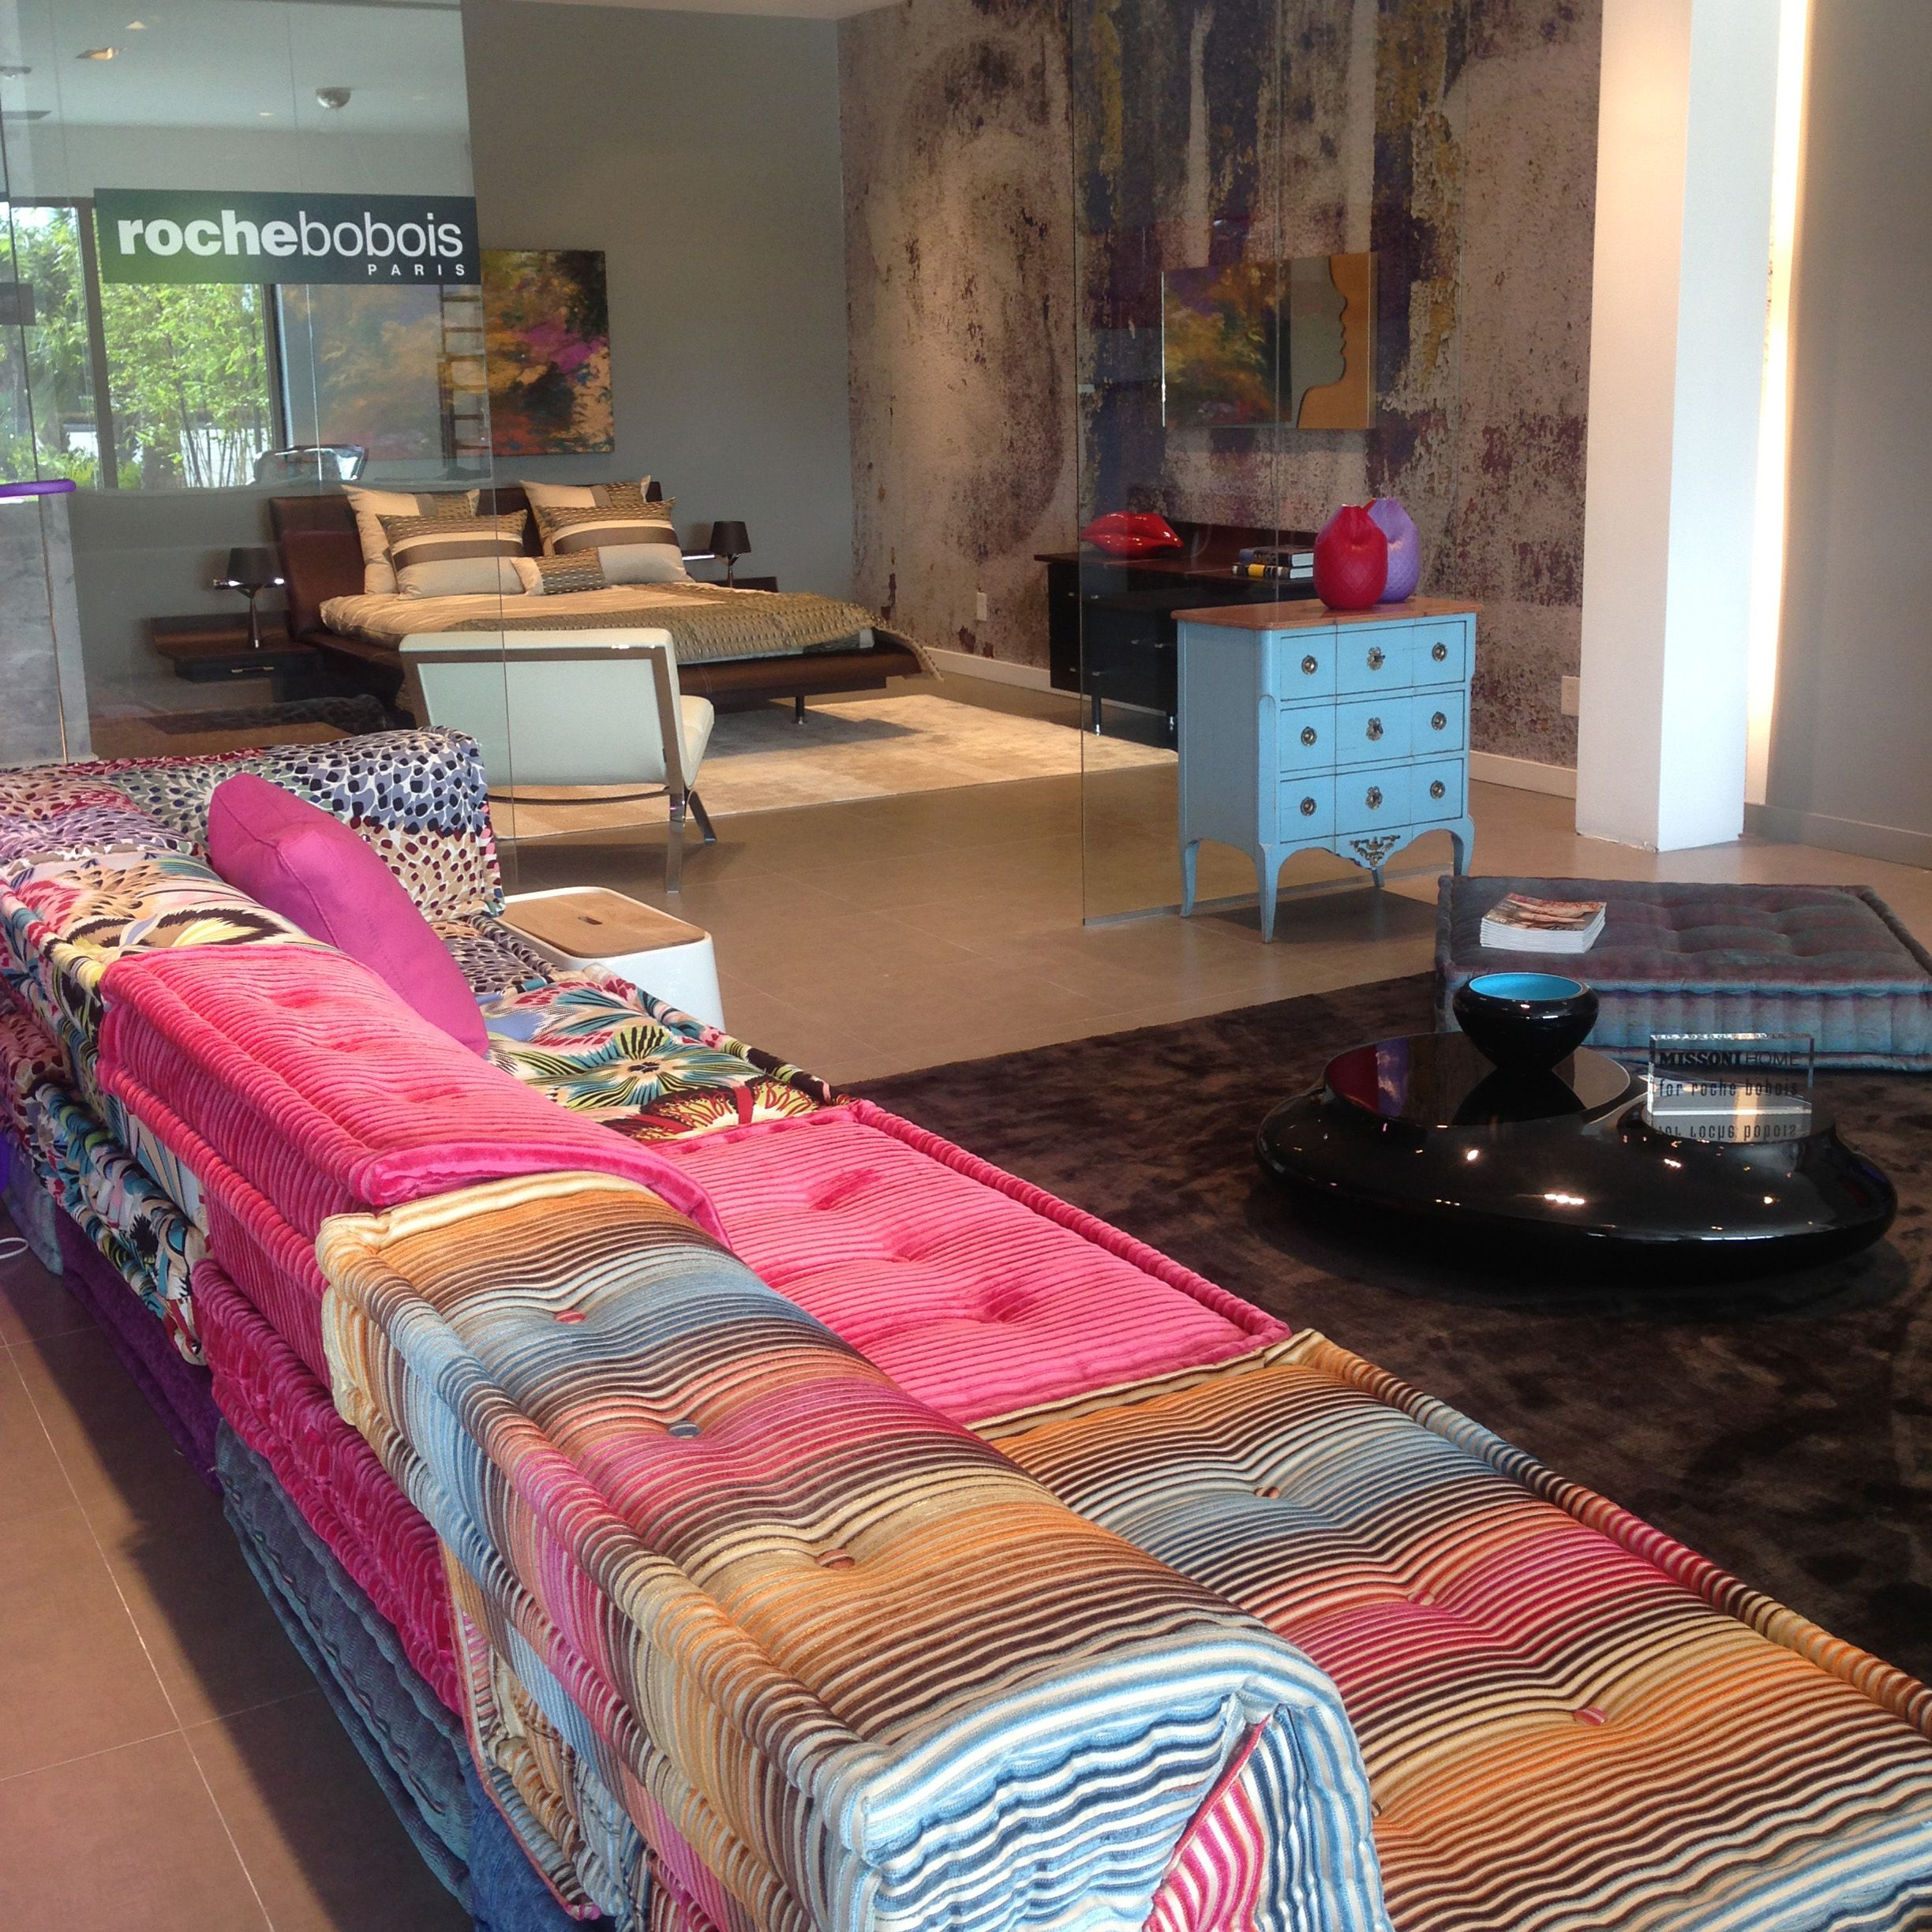 mahjong sofa roche bobois murphy bed with combo grand opening celebration at the north palm